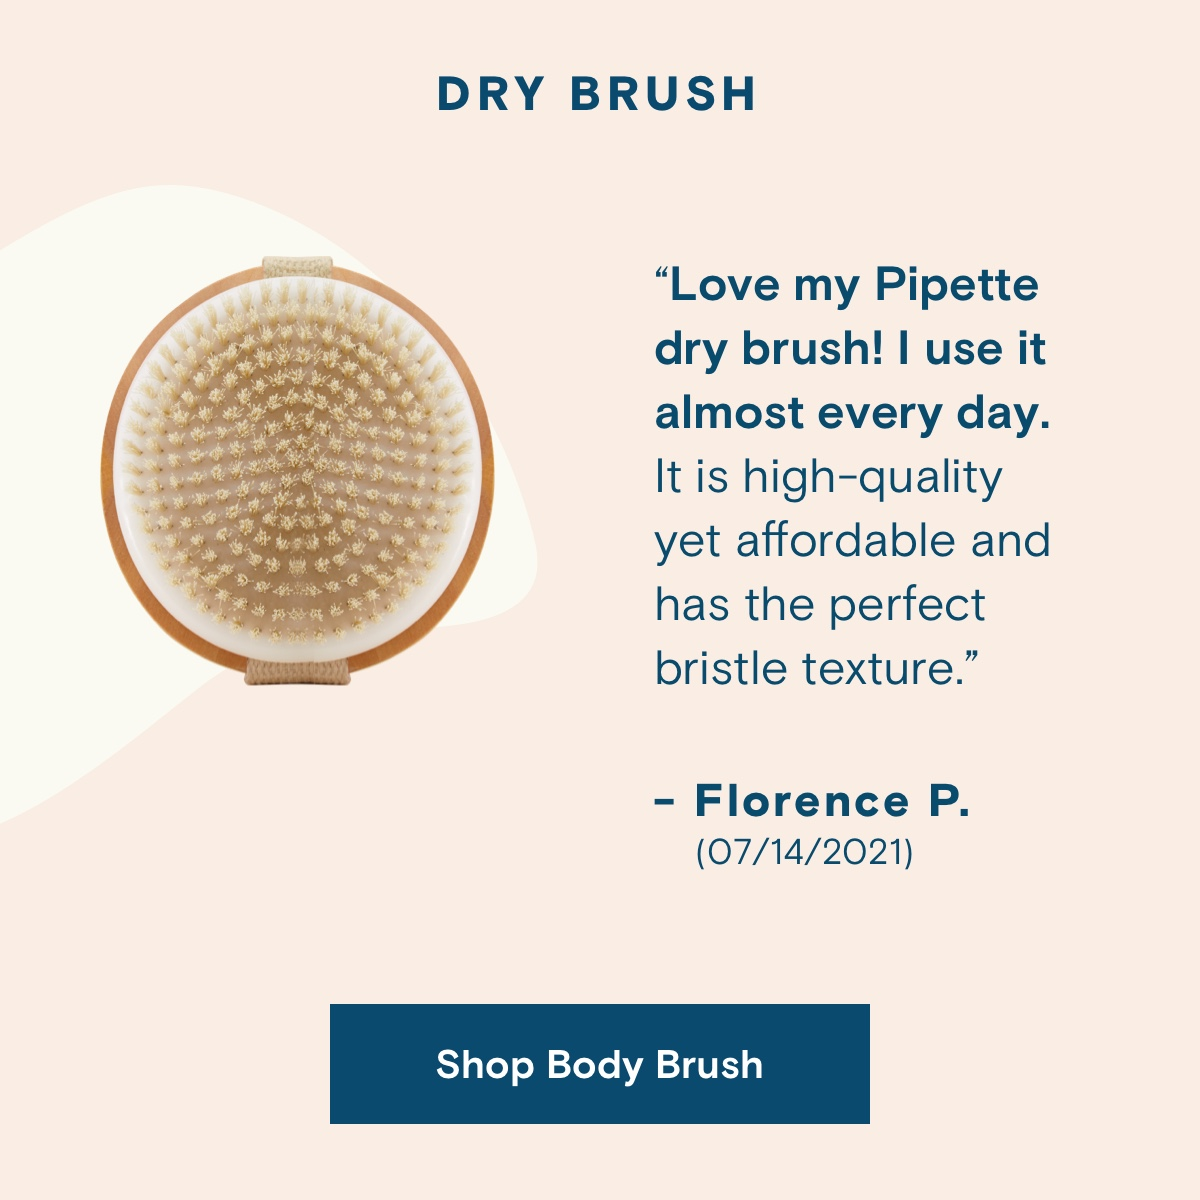 """DRY BRUSH. """"Love my Pipette dry brush! I use it almost every day. It is high-quality yet affordable and has the perfect bristle texture."""" -Florence P. (07/14/2021).  Shop Body Brush."""